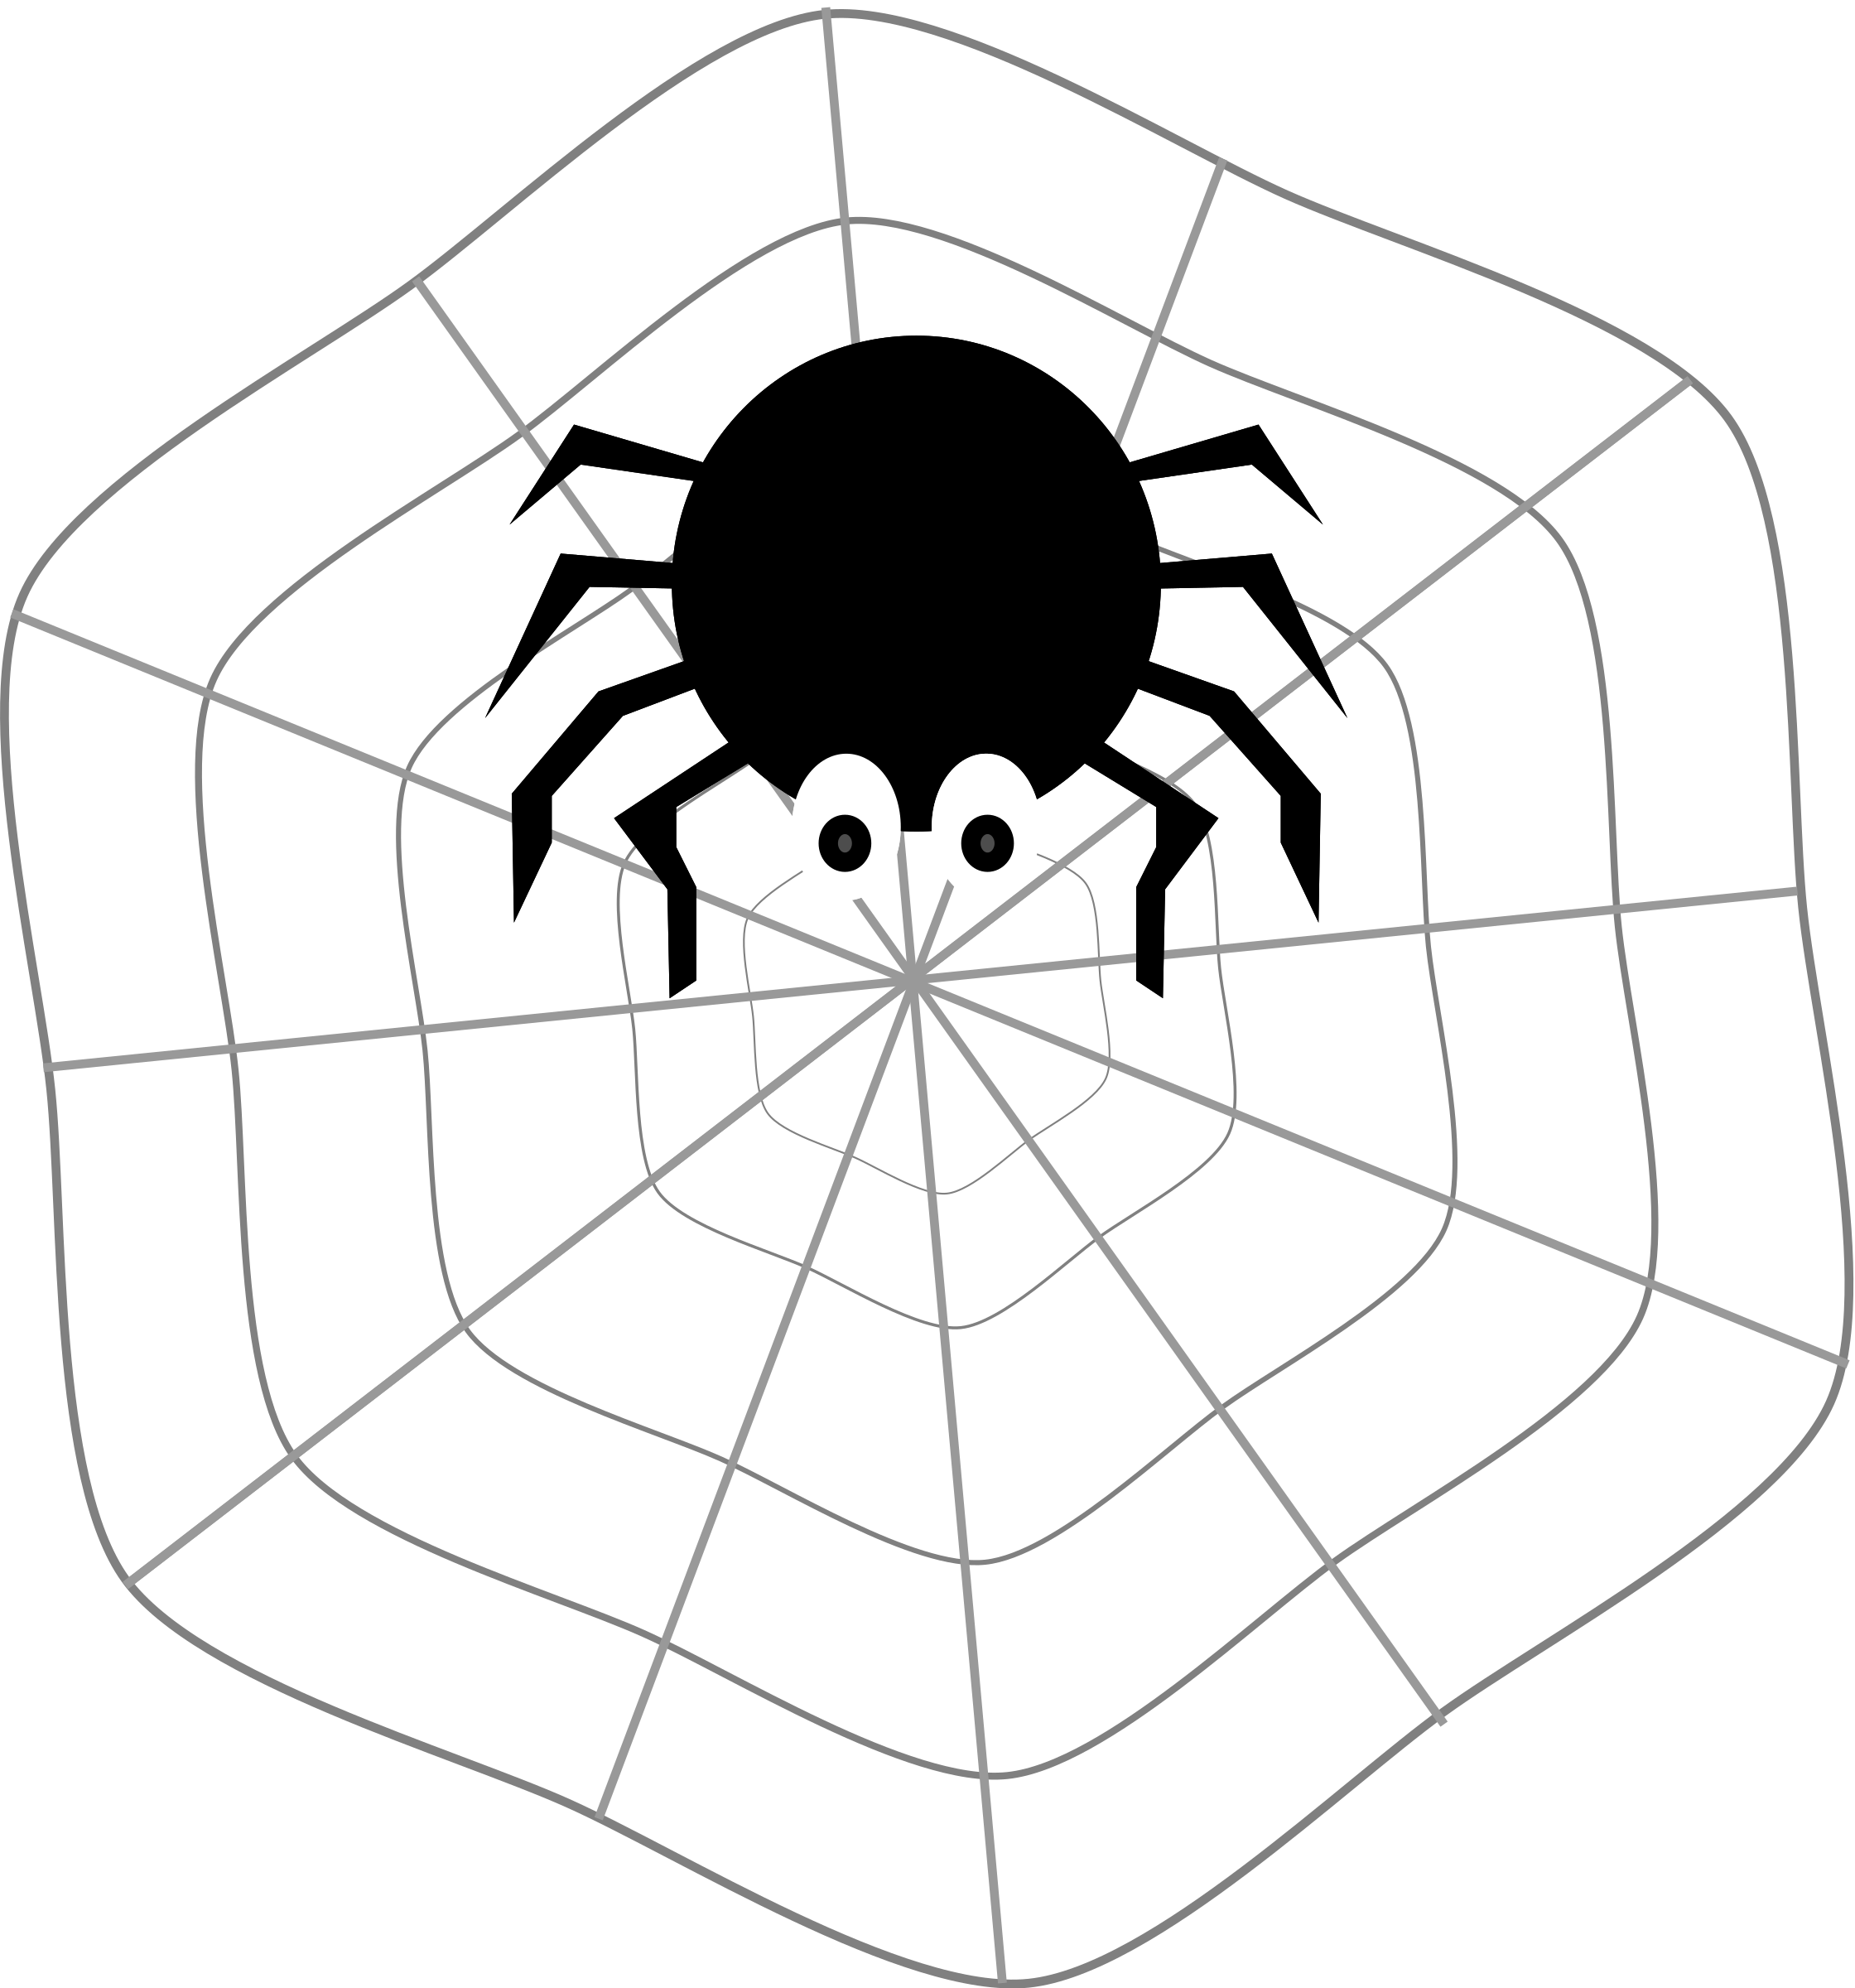 2240x2400 Spider web border clipart free images 7